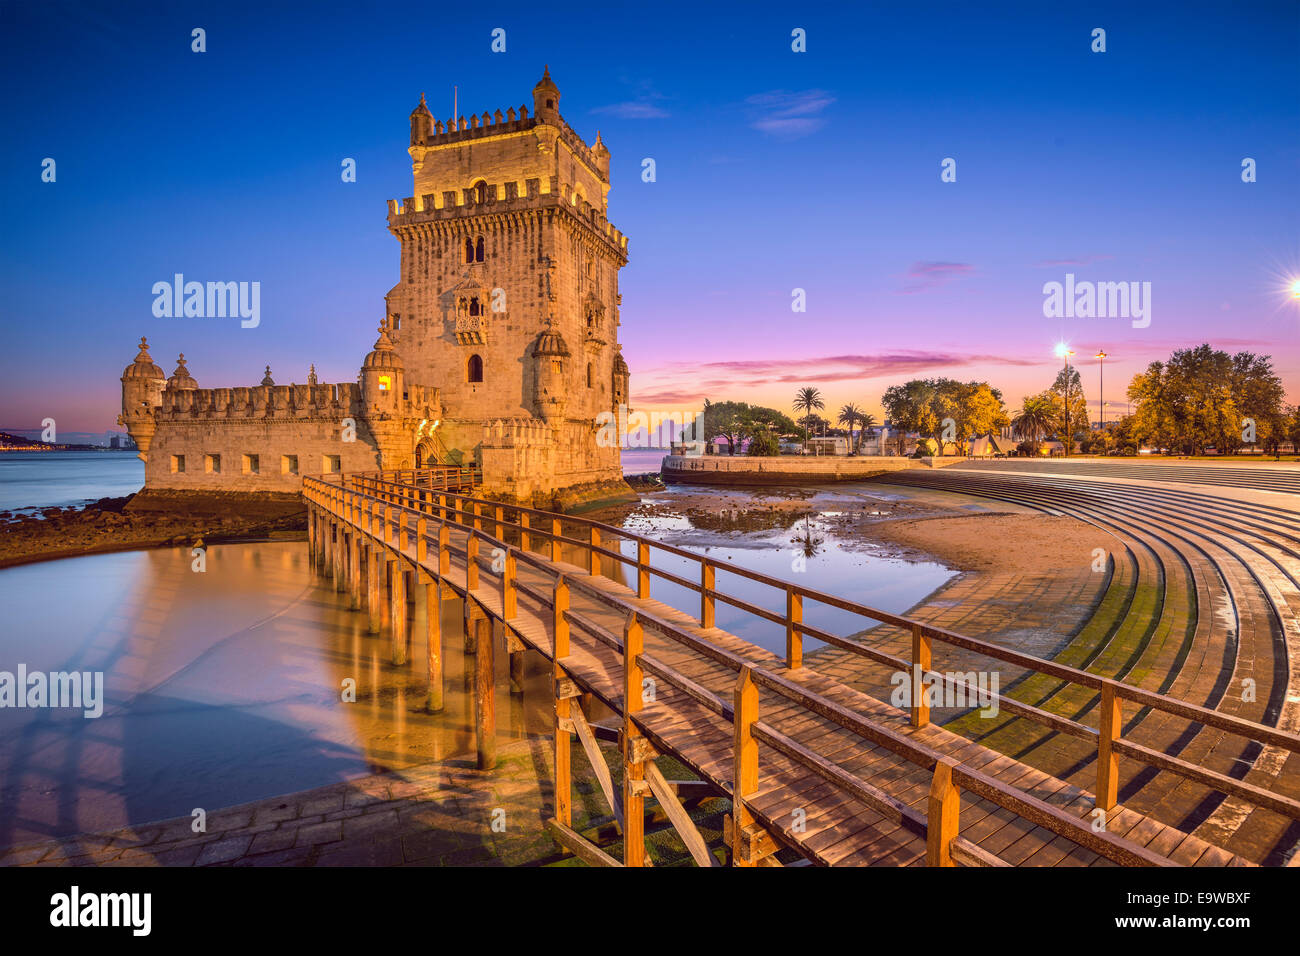 Lisbon, Portugal at Belem Tower on the Tagus River. Stock Photo